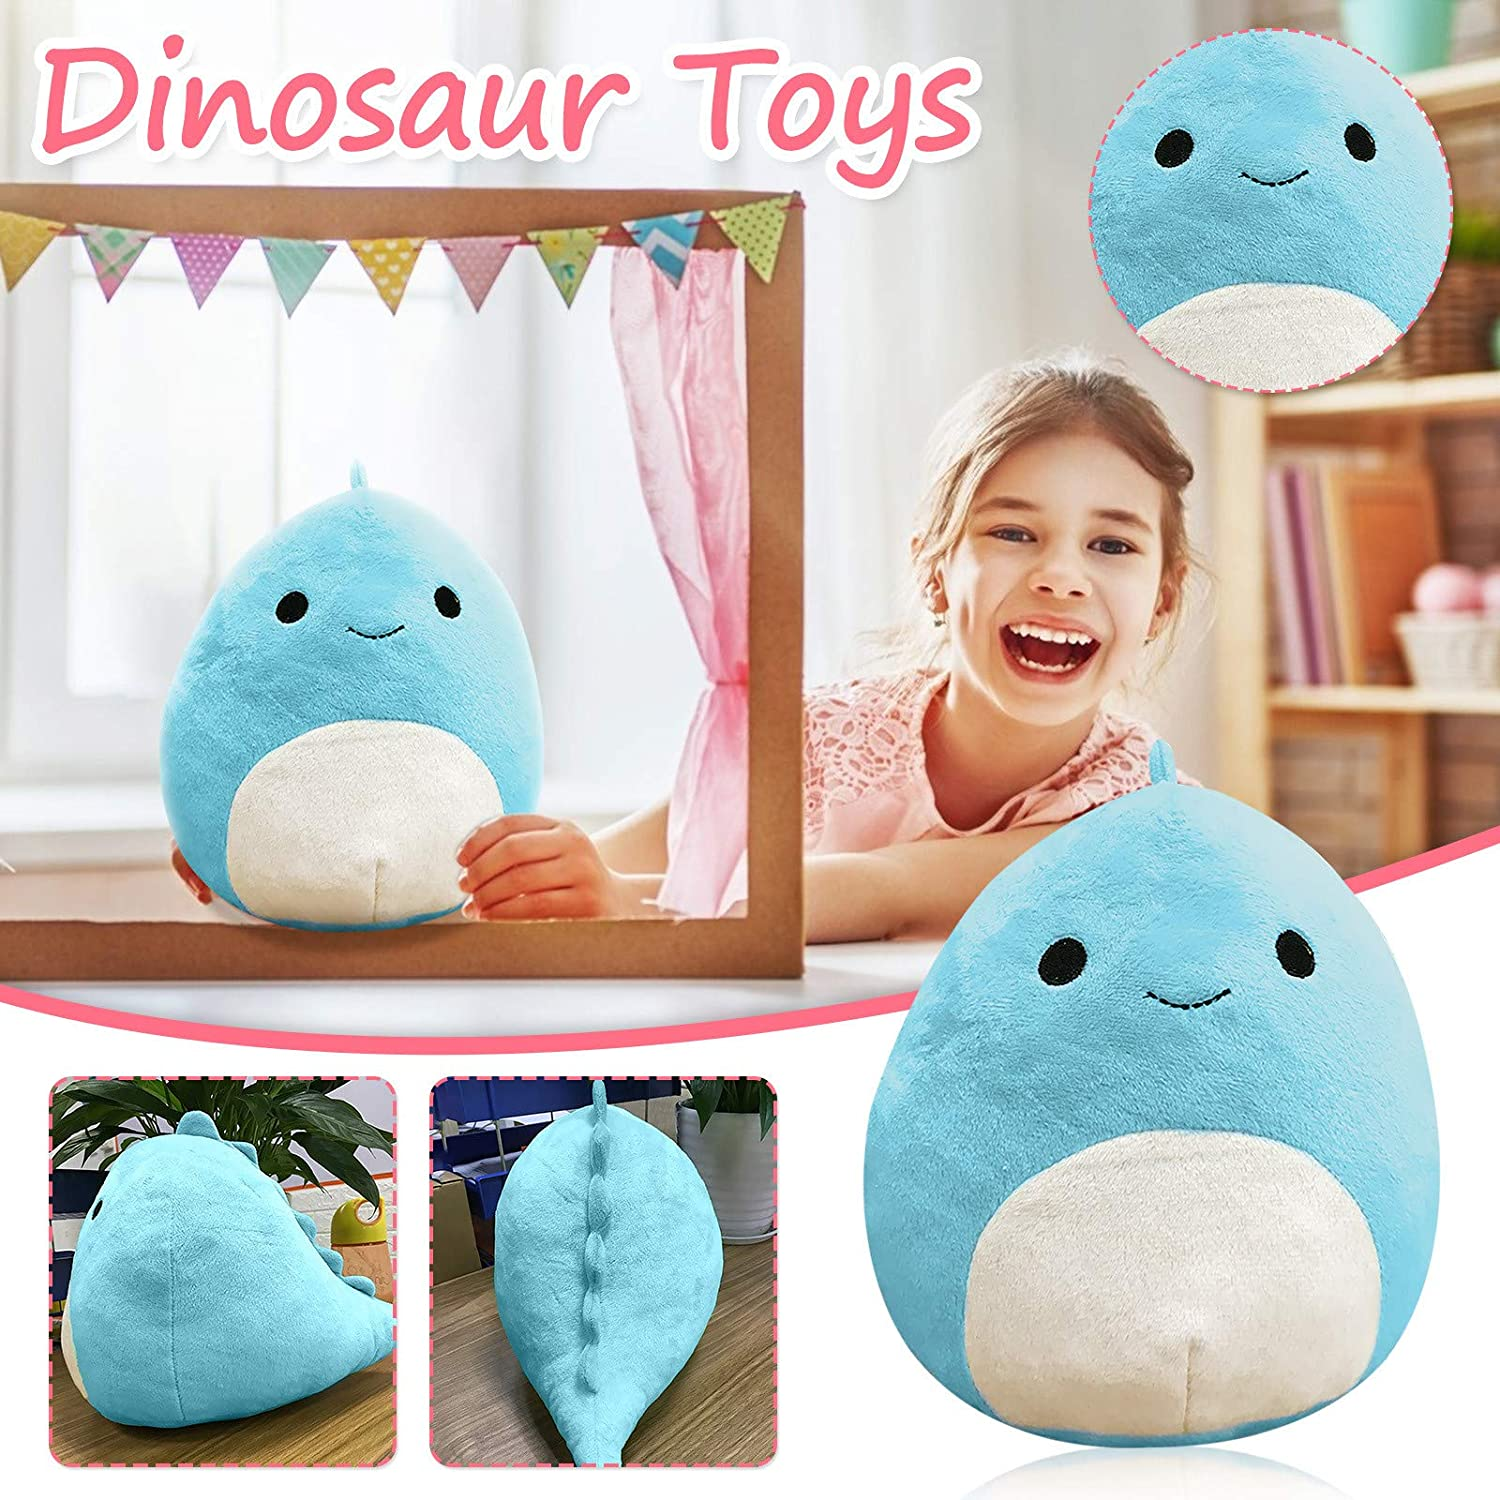 Black 8in Plushie Cute Dinosaur Stuffed Animals Plush Toy Throw Pillows Doll Plush Baby Dinosaur Stuffed Toy Soft Lumbar Back Cushion Easter Halloween Christmas Birthday Gift for Kids and Adults